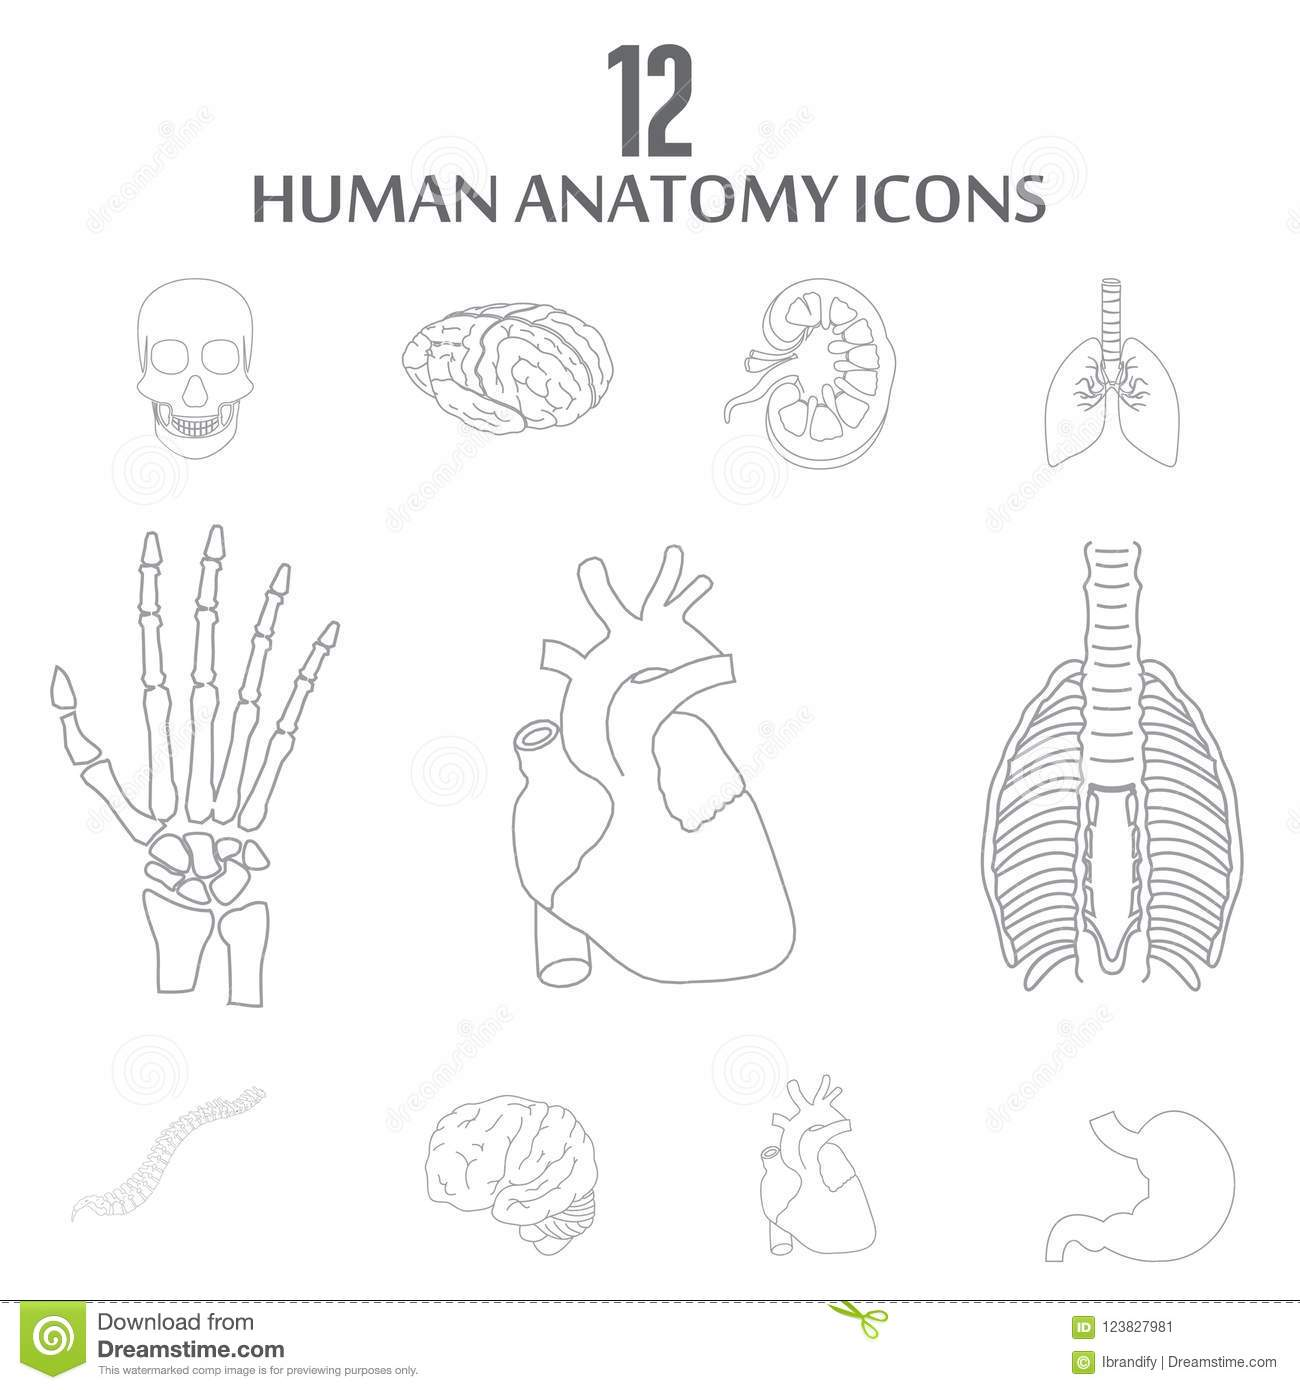 Human Anatomy Icons Set Vector Stock Vector - Illustration of ...